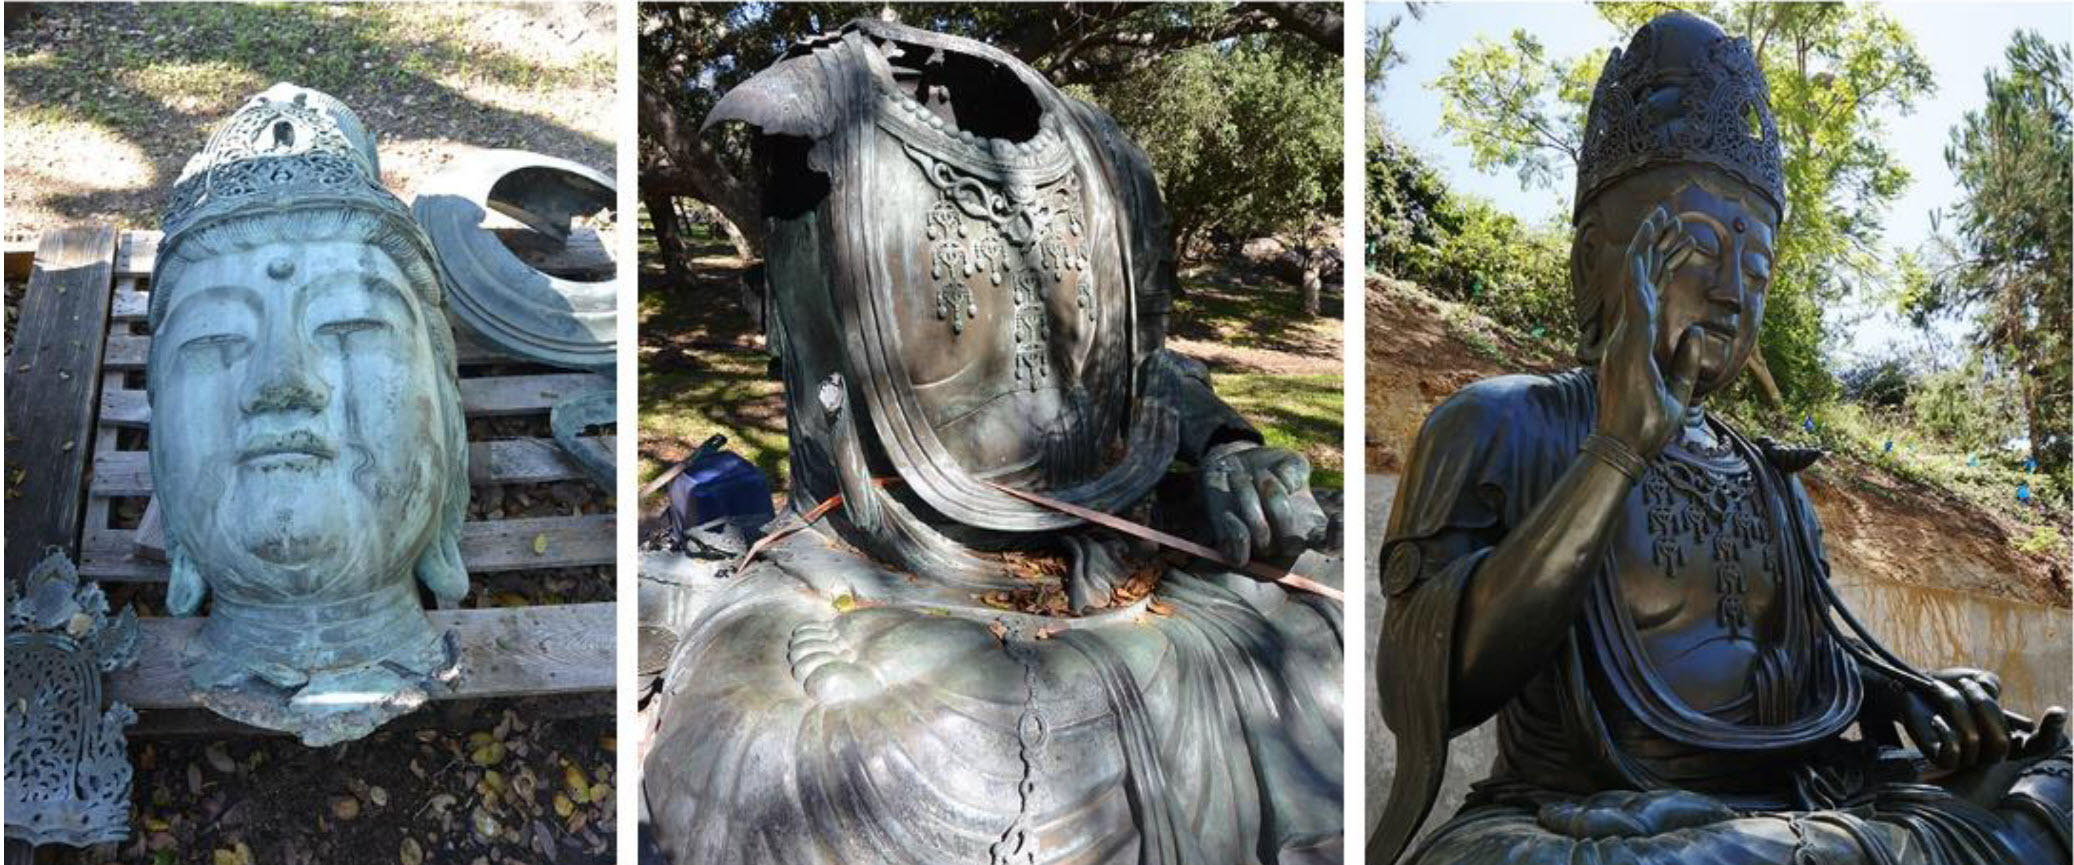 Left and Middle: Before restoration. Right: Restored statue in new setting. Photos courtesy of the Japanese Friendship Garden of San Diego, Deccember 20, 2018 press release.